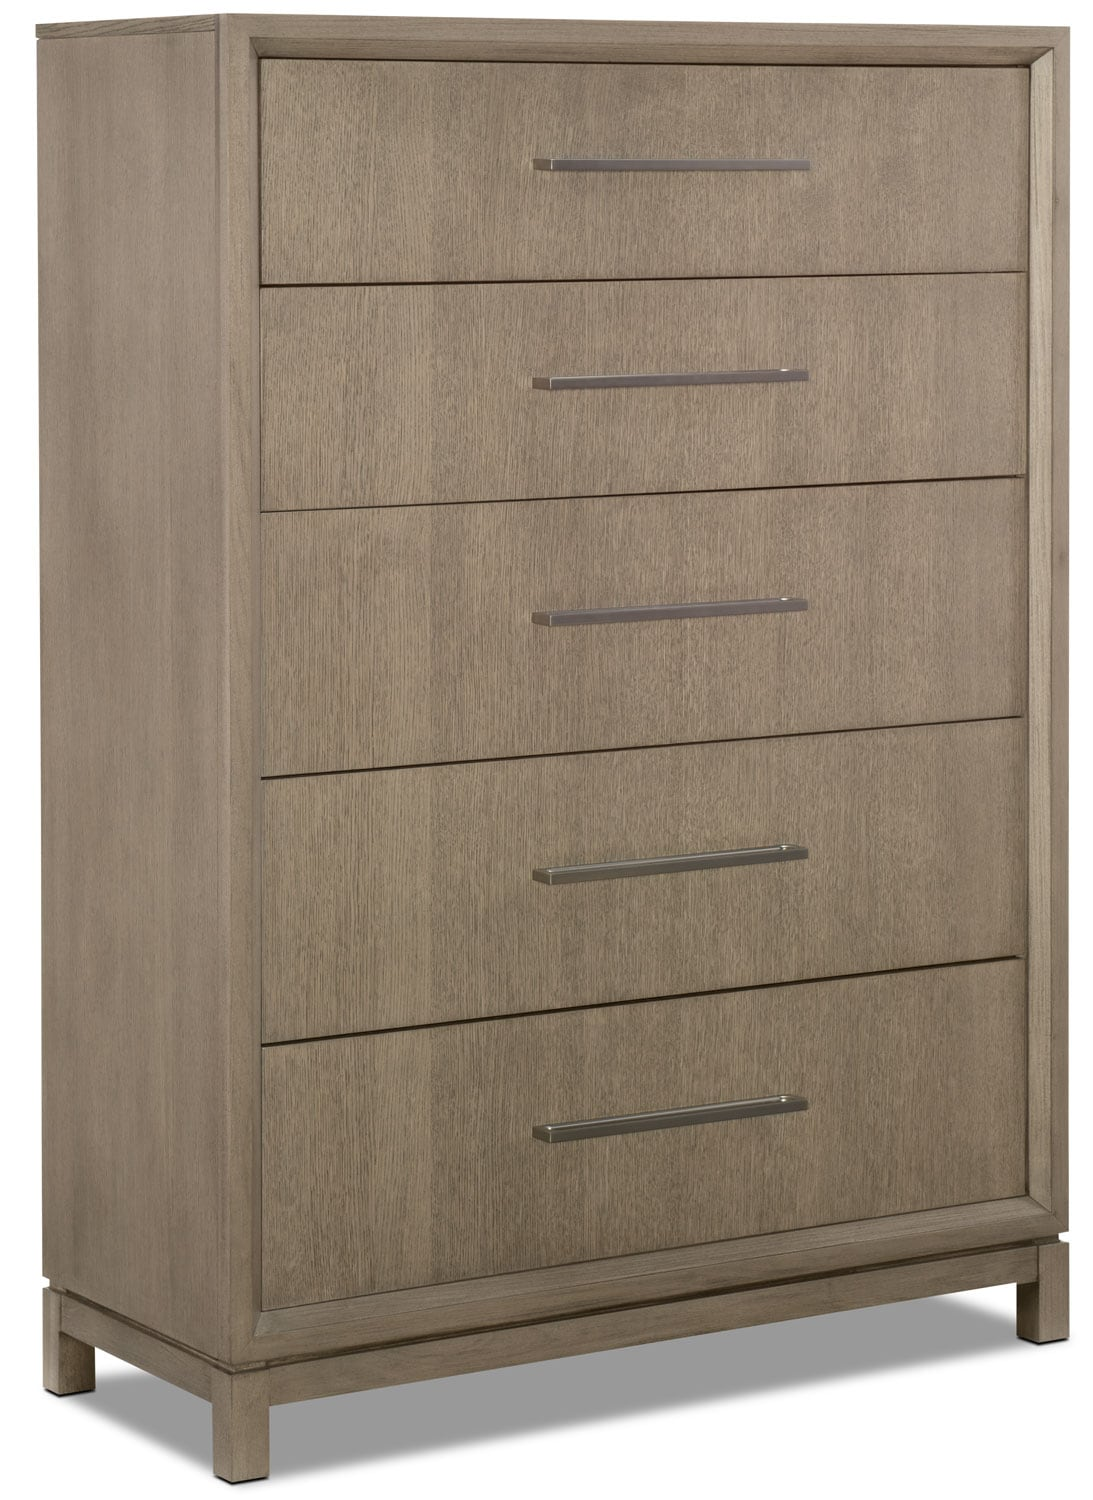 Rachael Ray Highline 5-Drawer Chest - Greige